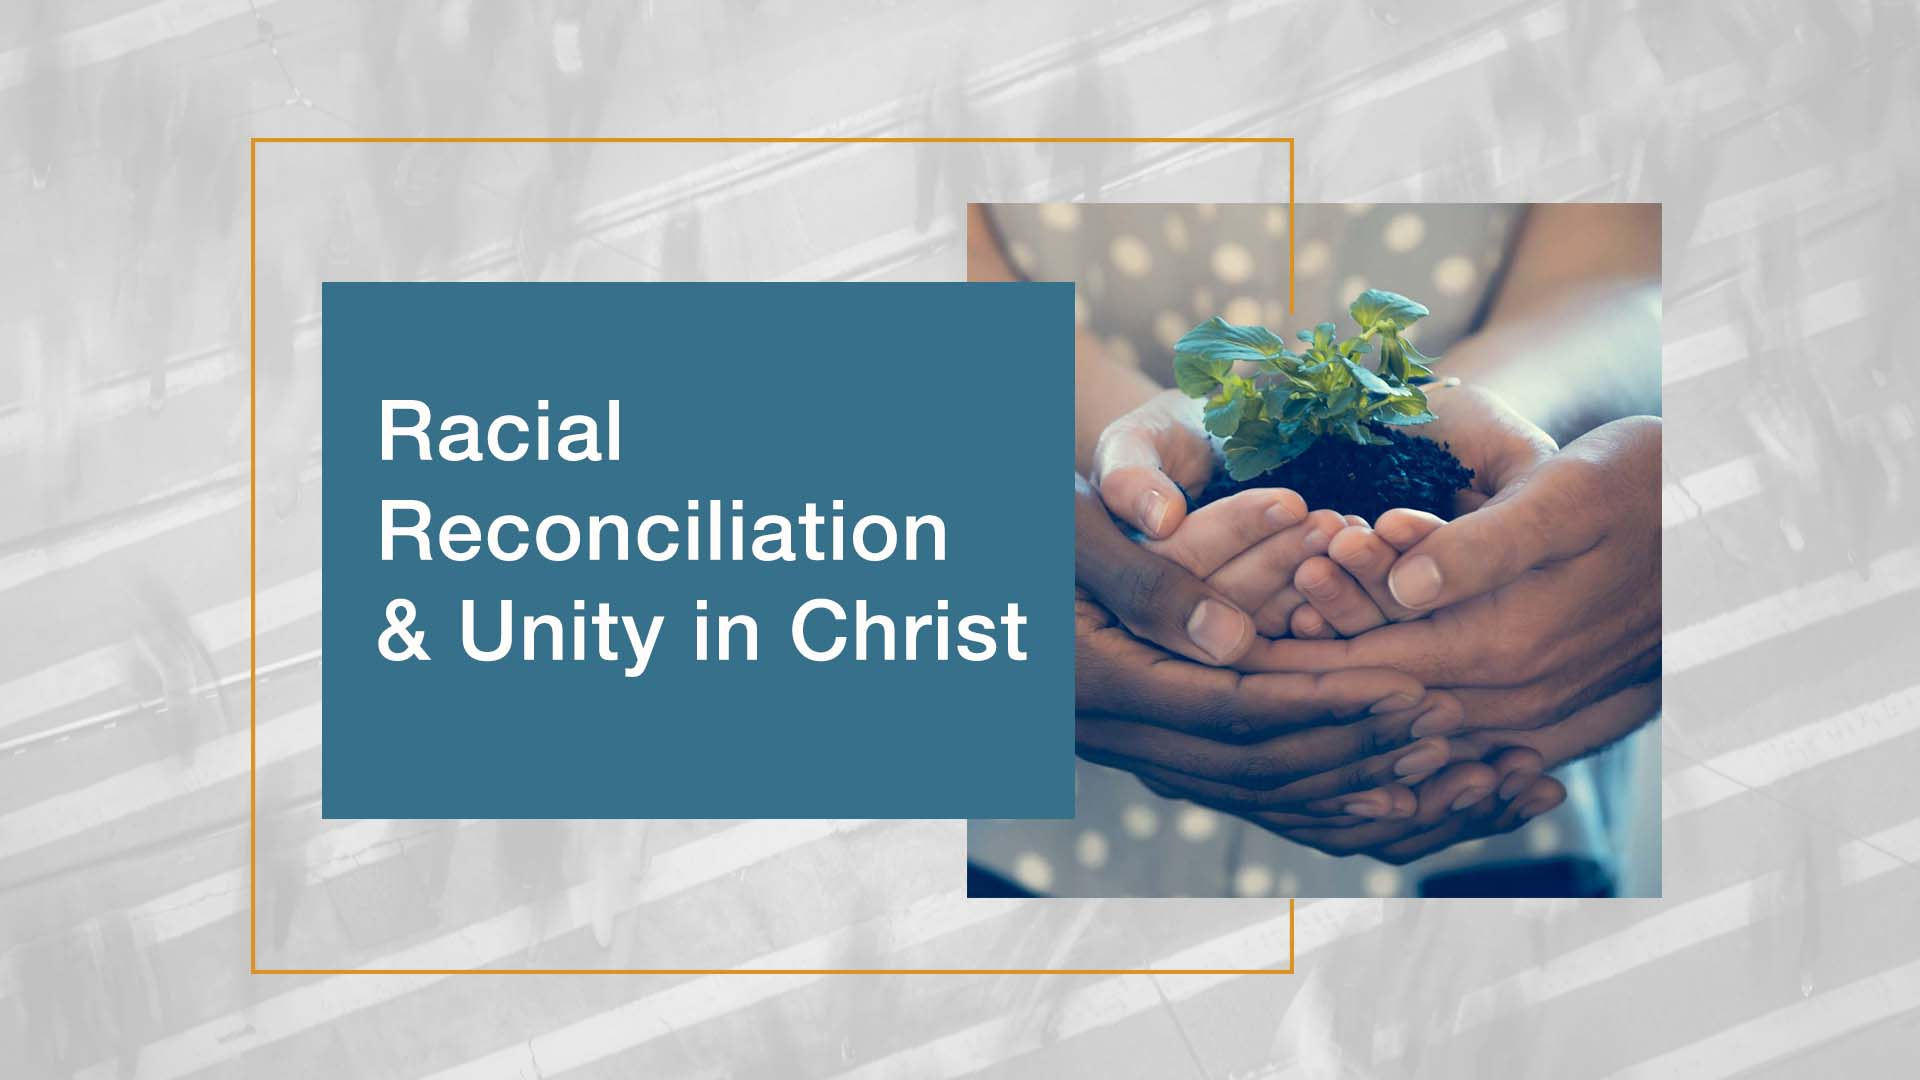 Racial Reconciliation & Unity in Christ